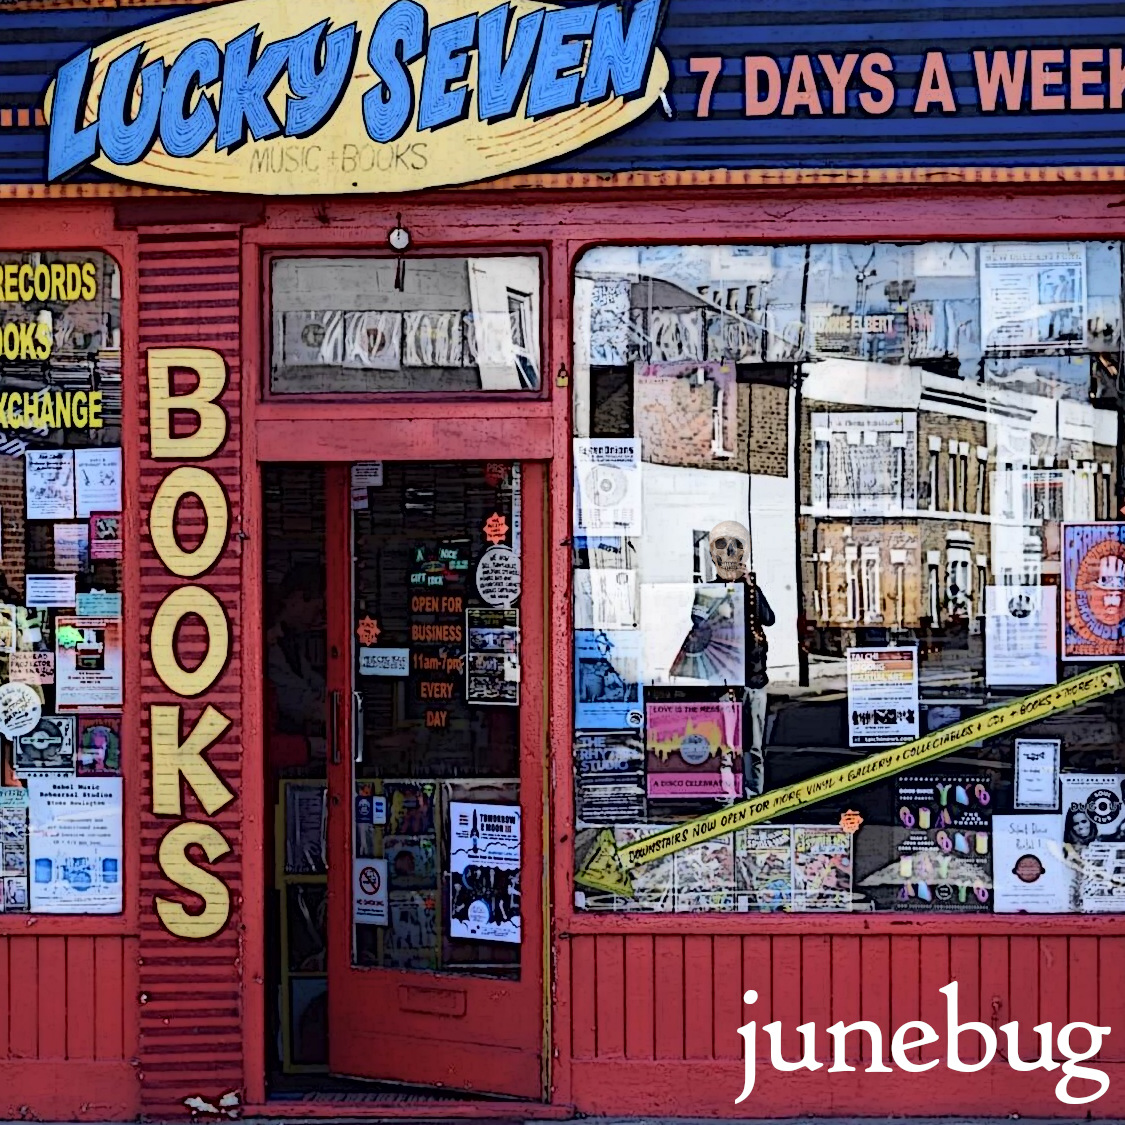 Luck Seven by Junebug (2020) - Album Art